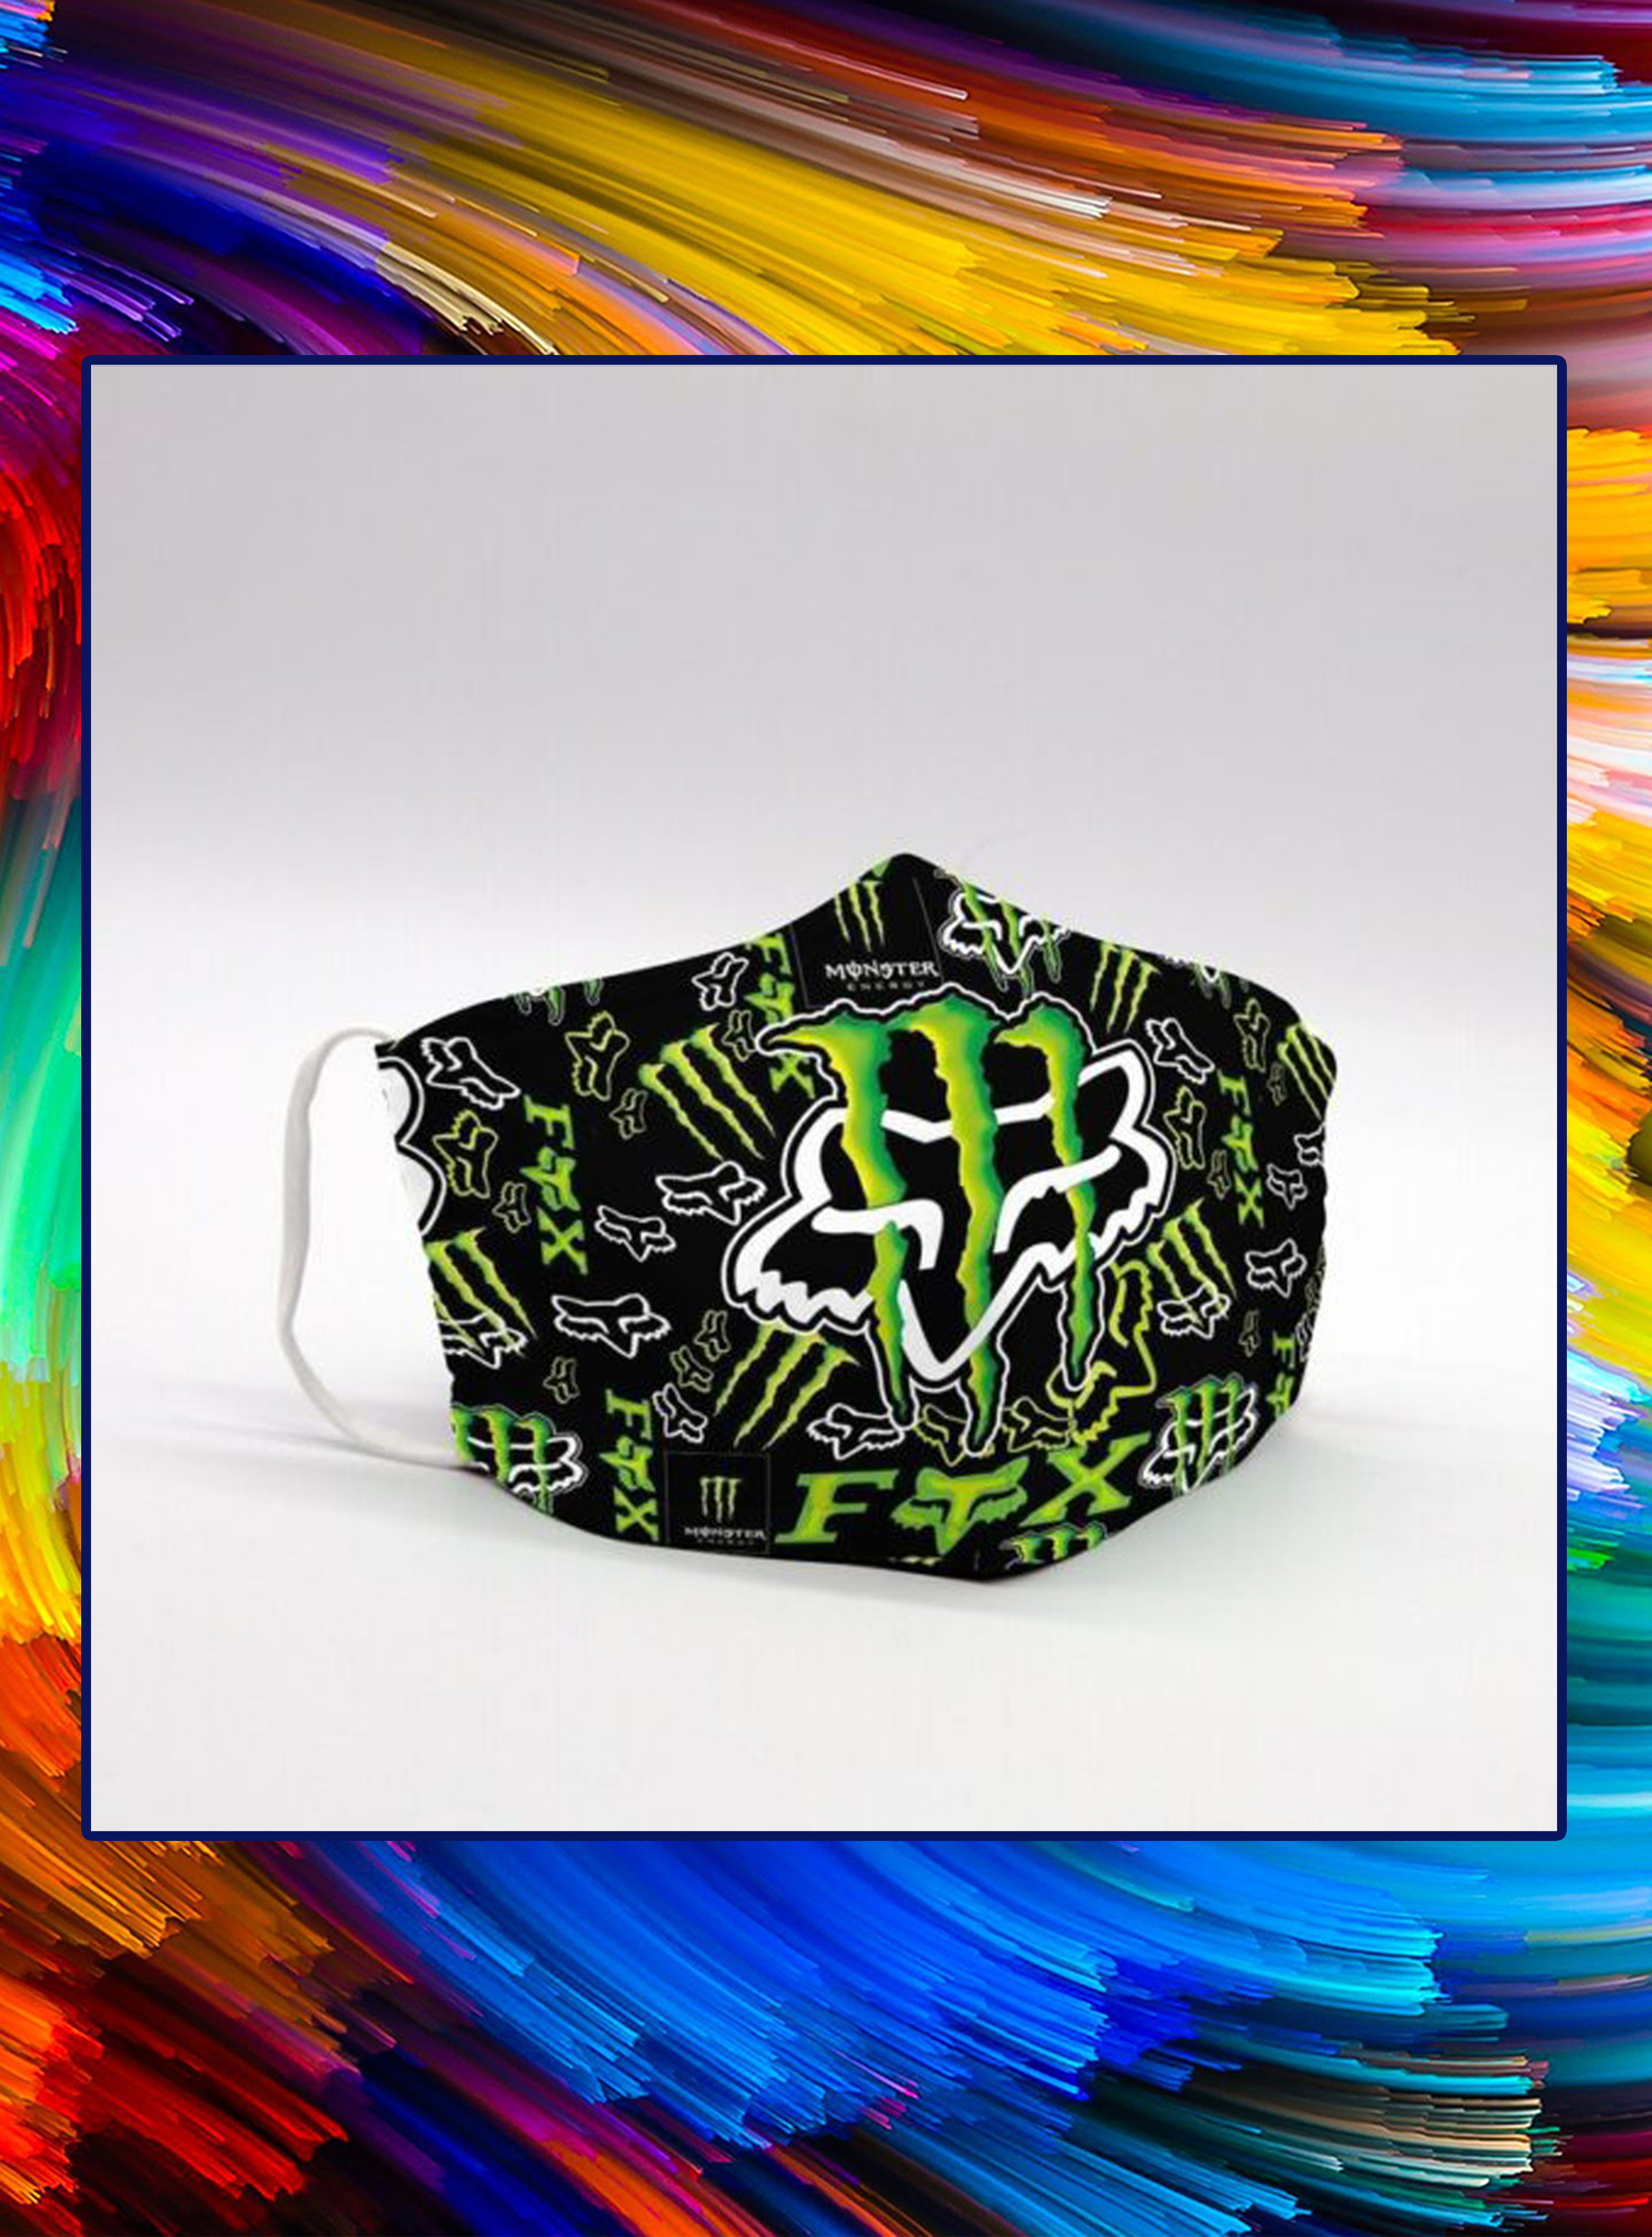 Monster energy fox racing face mask - pic 1